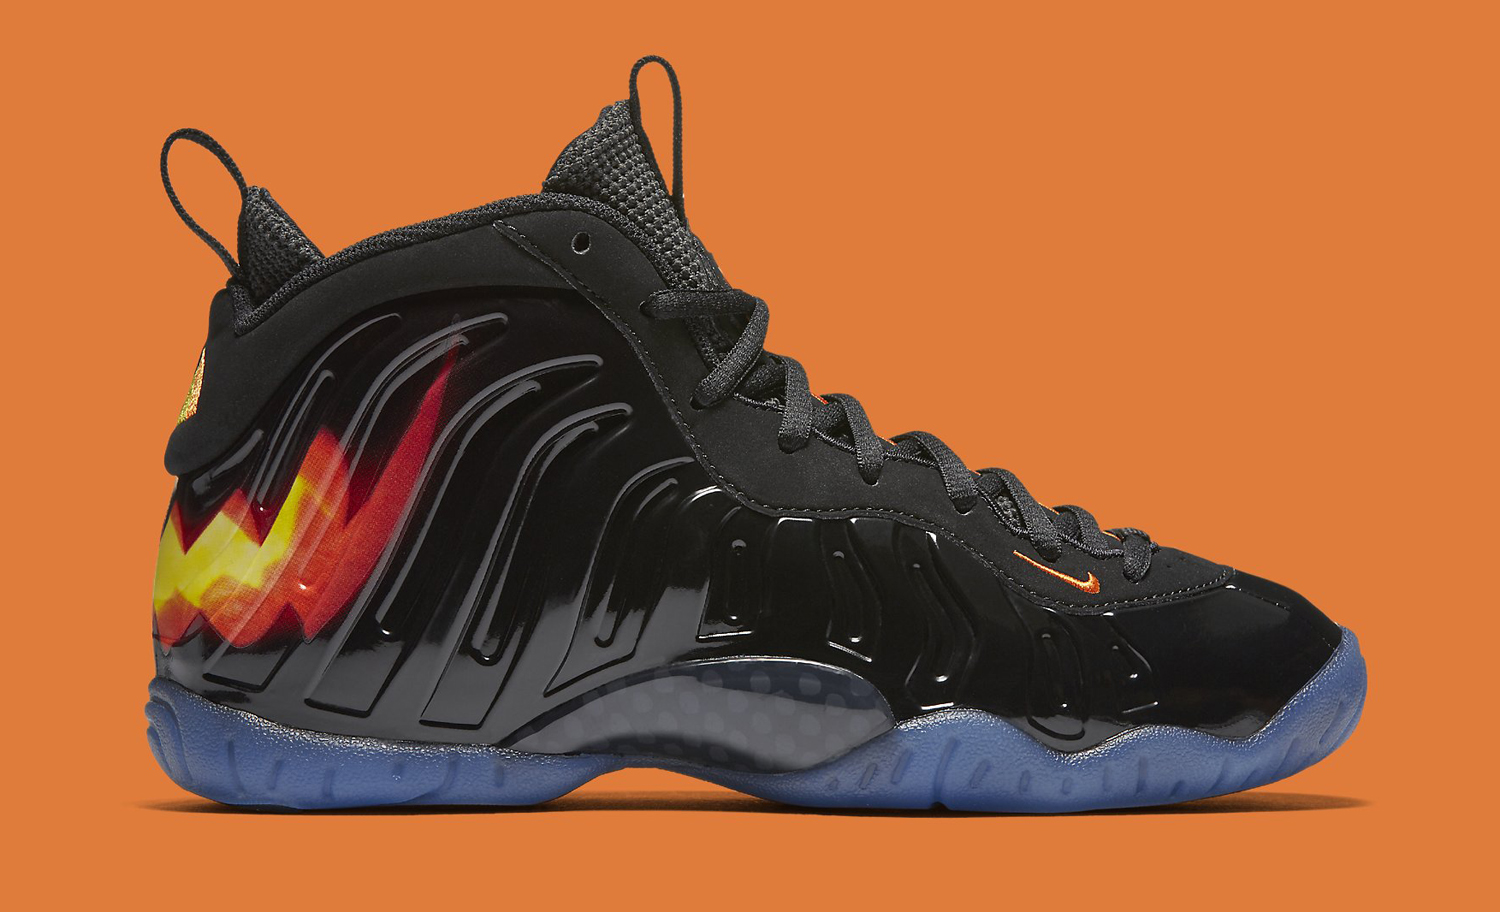 Halloween Nike Foamposite 846077-002 Profile